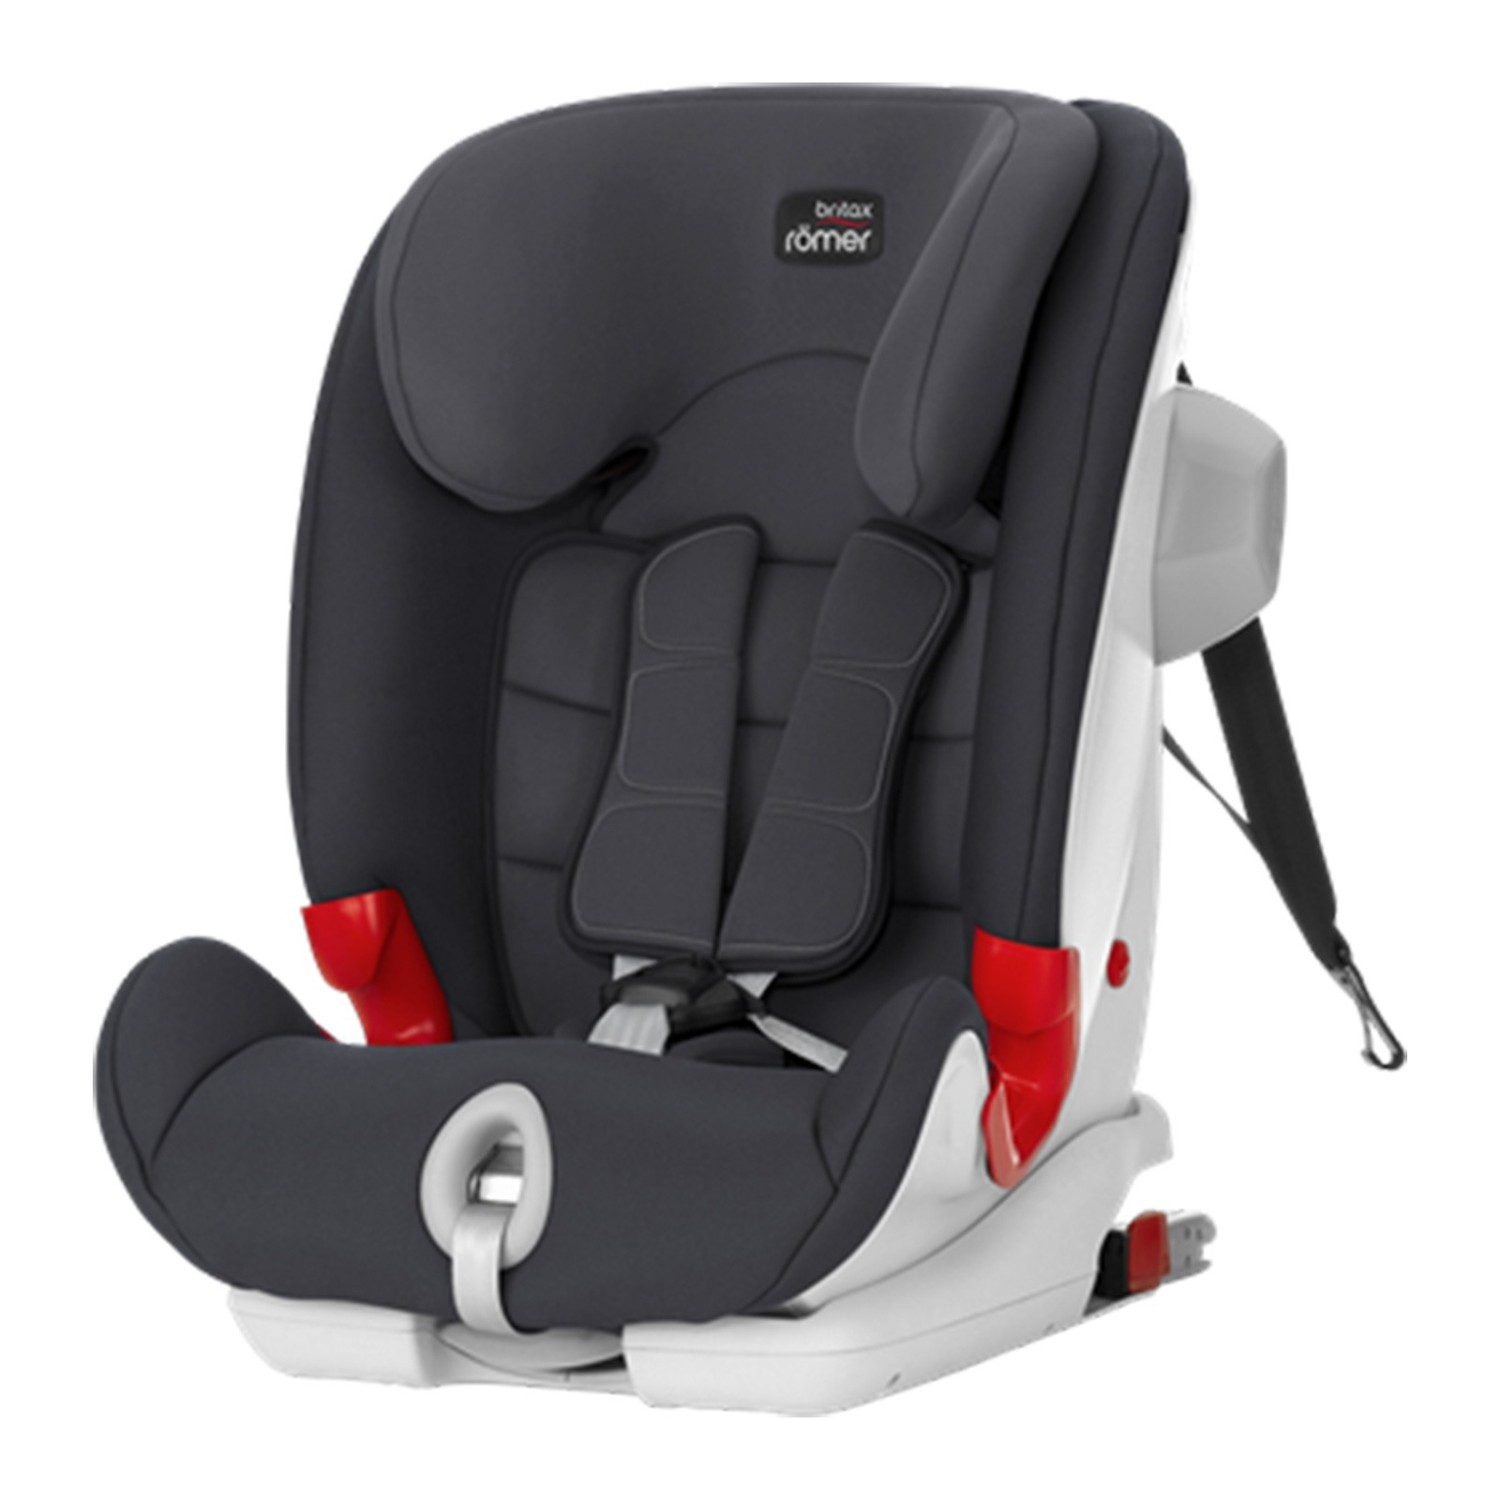 britax r mer advansafix iii sict 9 36 kg oto koltu u fiyat. Black Bedroom Furniture Sets. Home Design Ideas